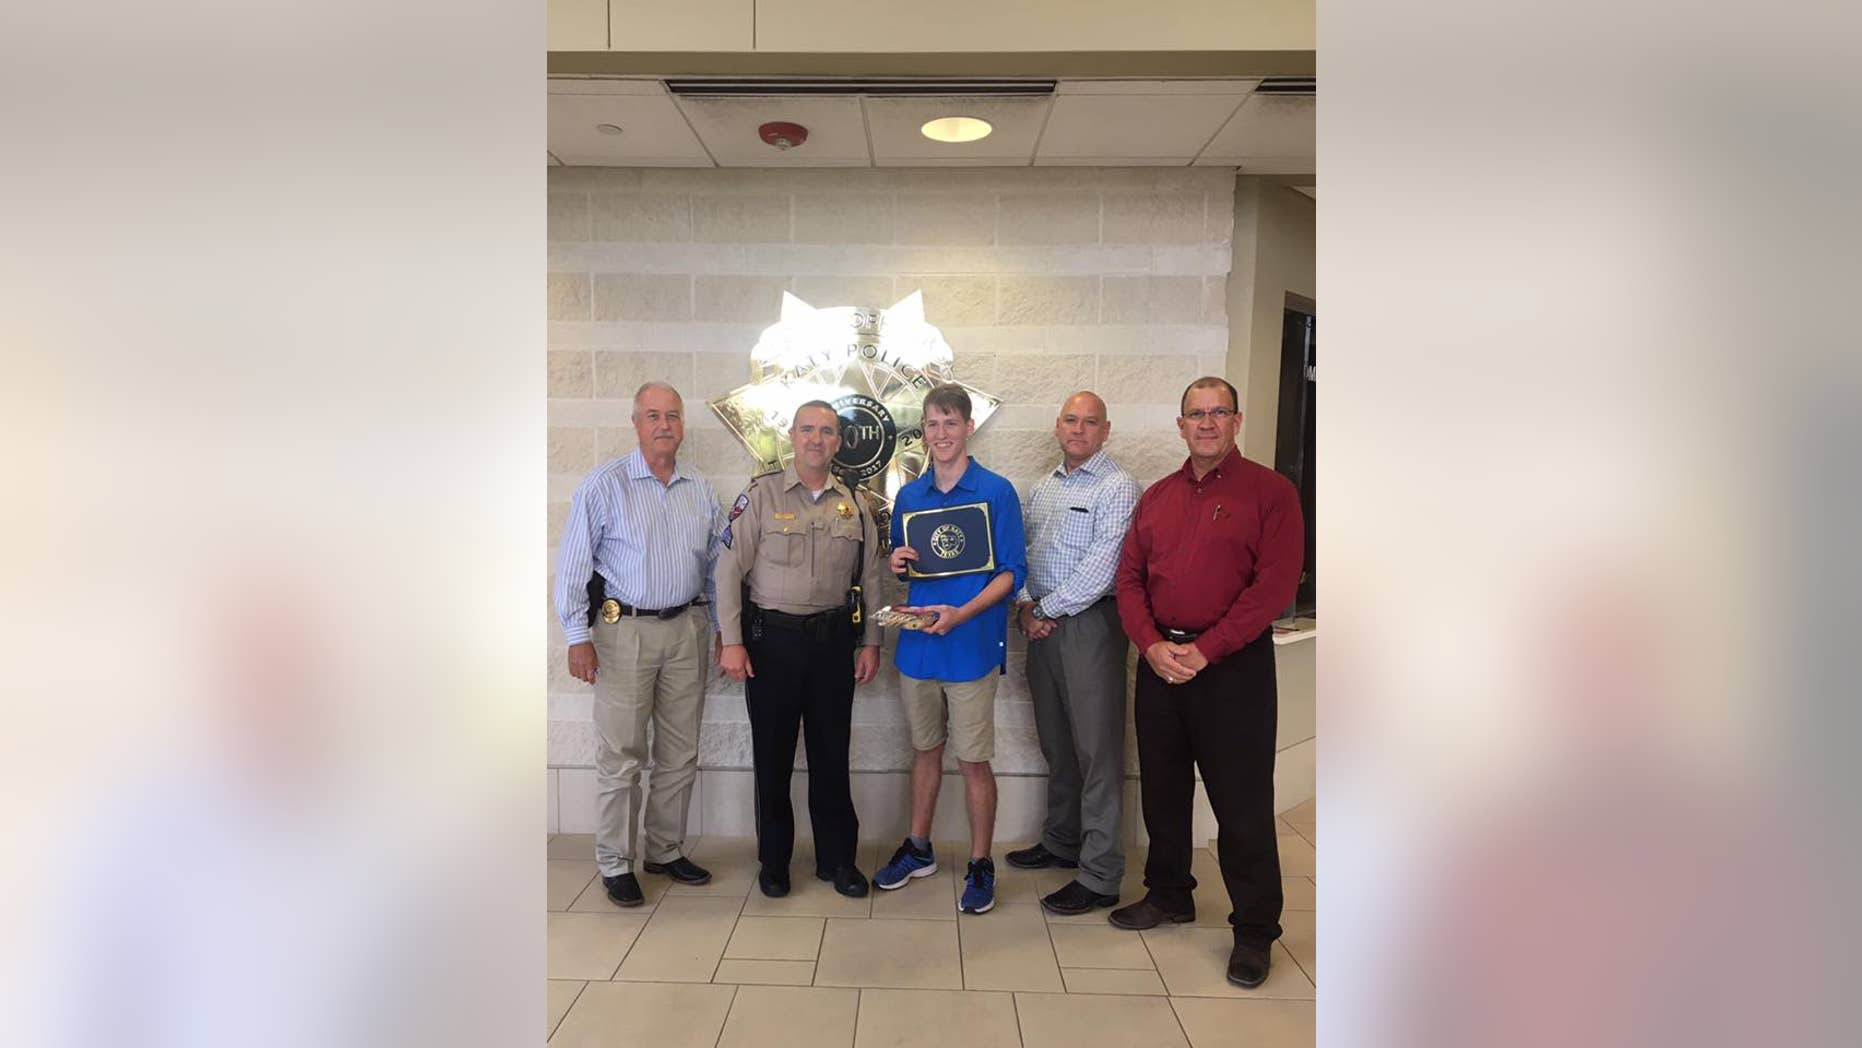 The Katy Police Department in Texas honored Zachary Randolph for purchasing an officer an item from a cookie store. (Katy Police Department)